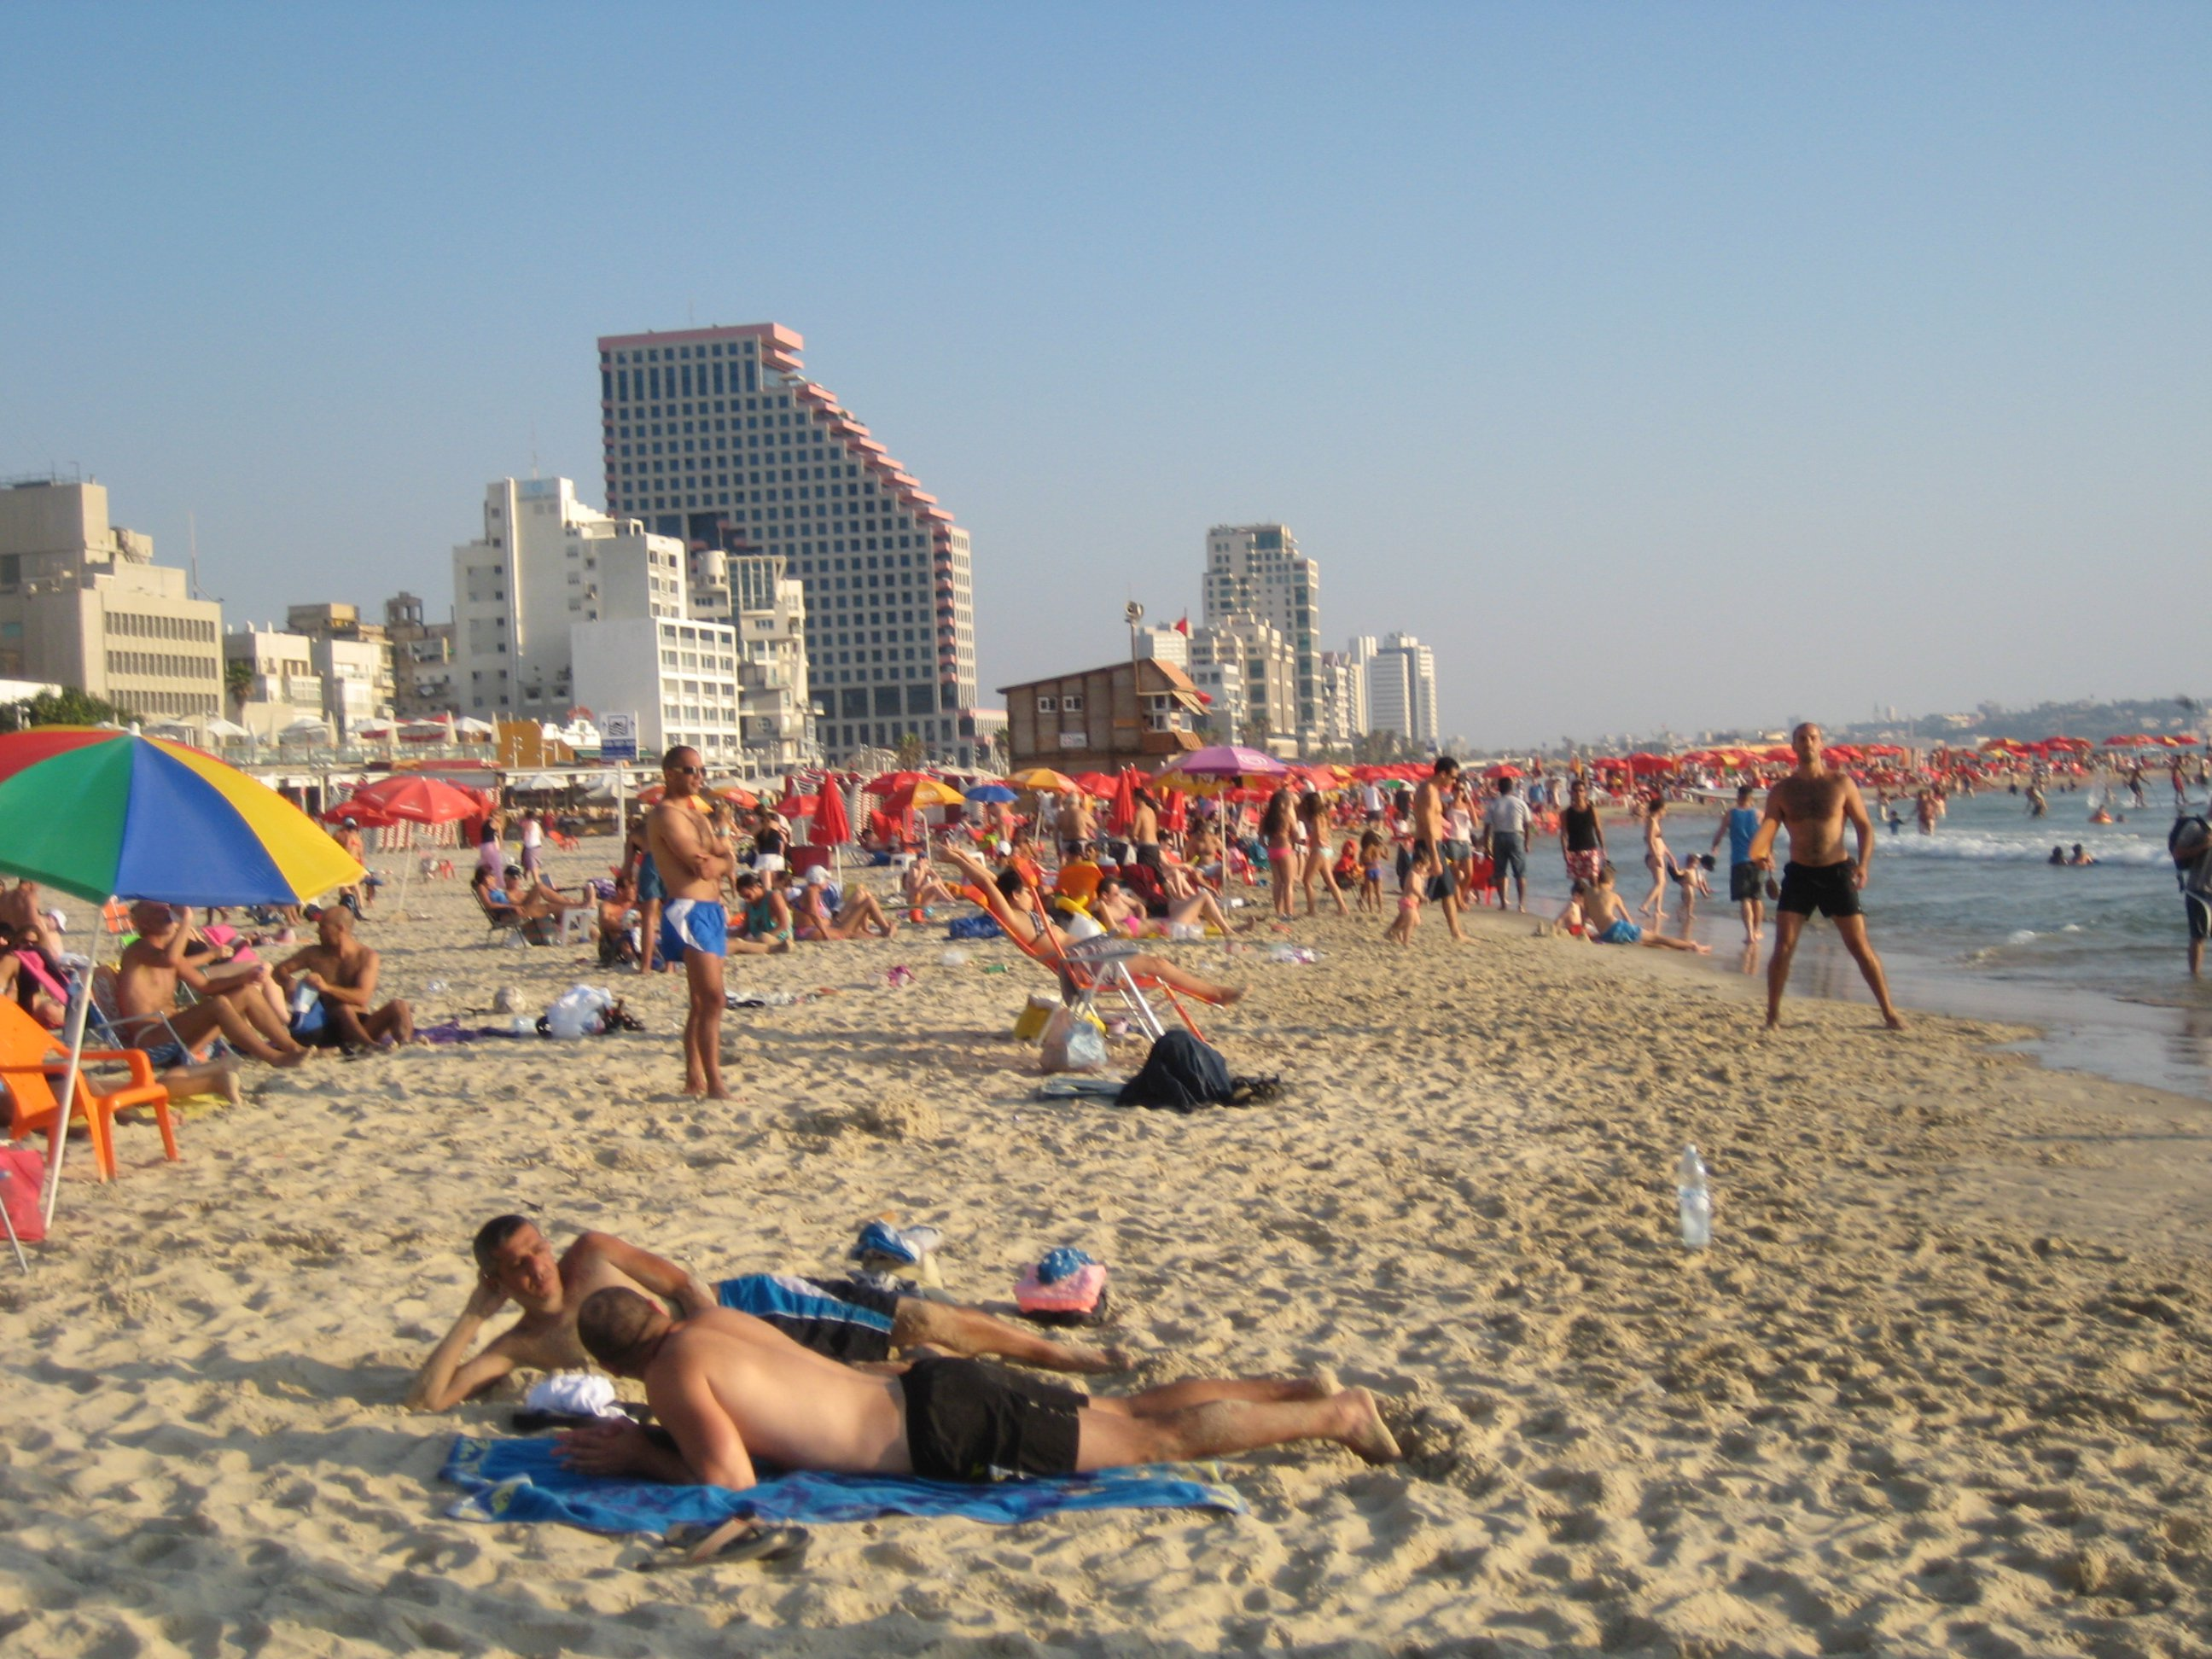 photos-israel-plage-tel-aviv-big.jpg